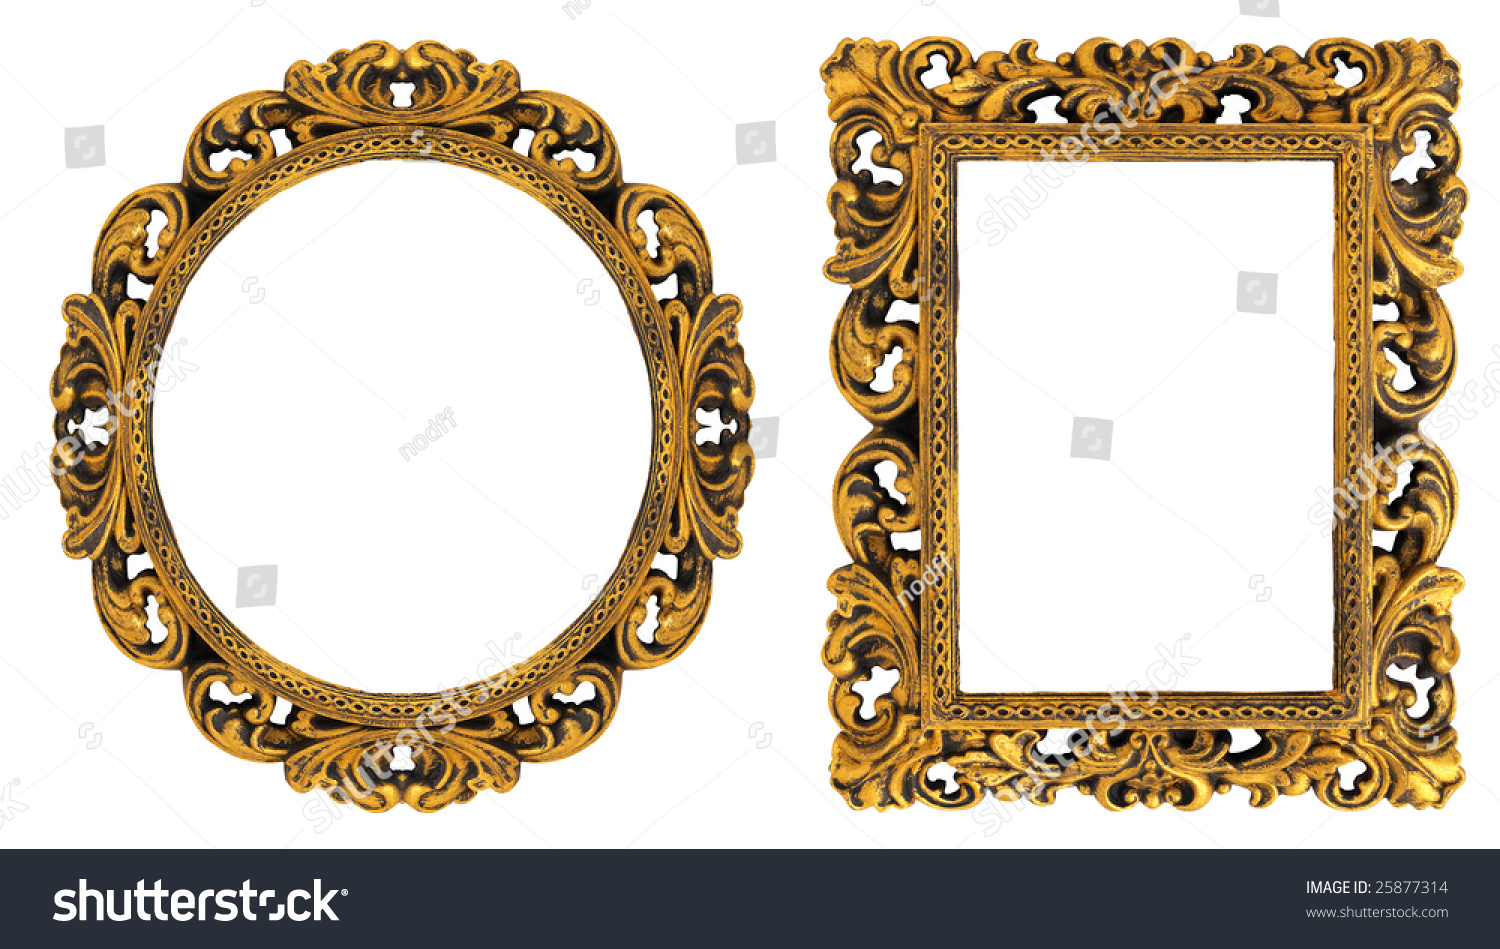 oval rectangular gold picture frame decorative stock photo g